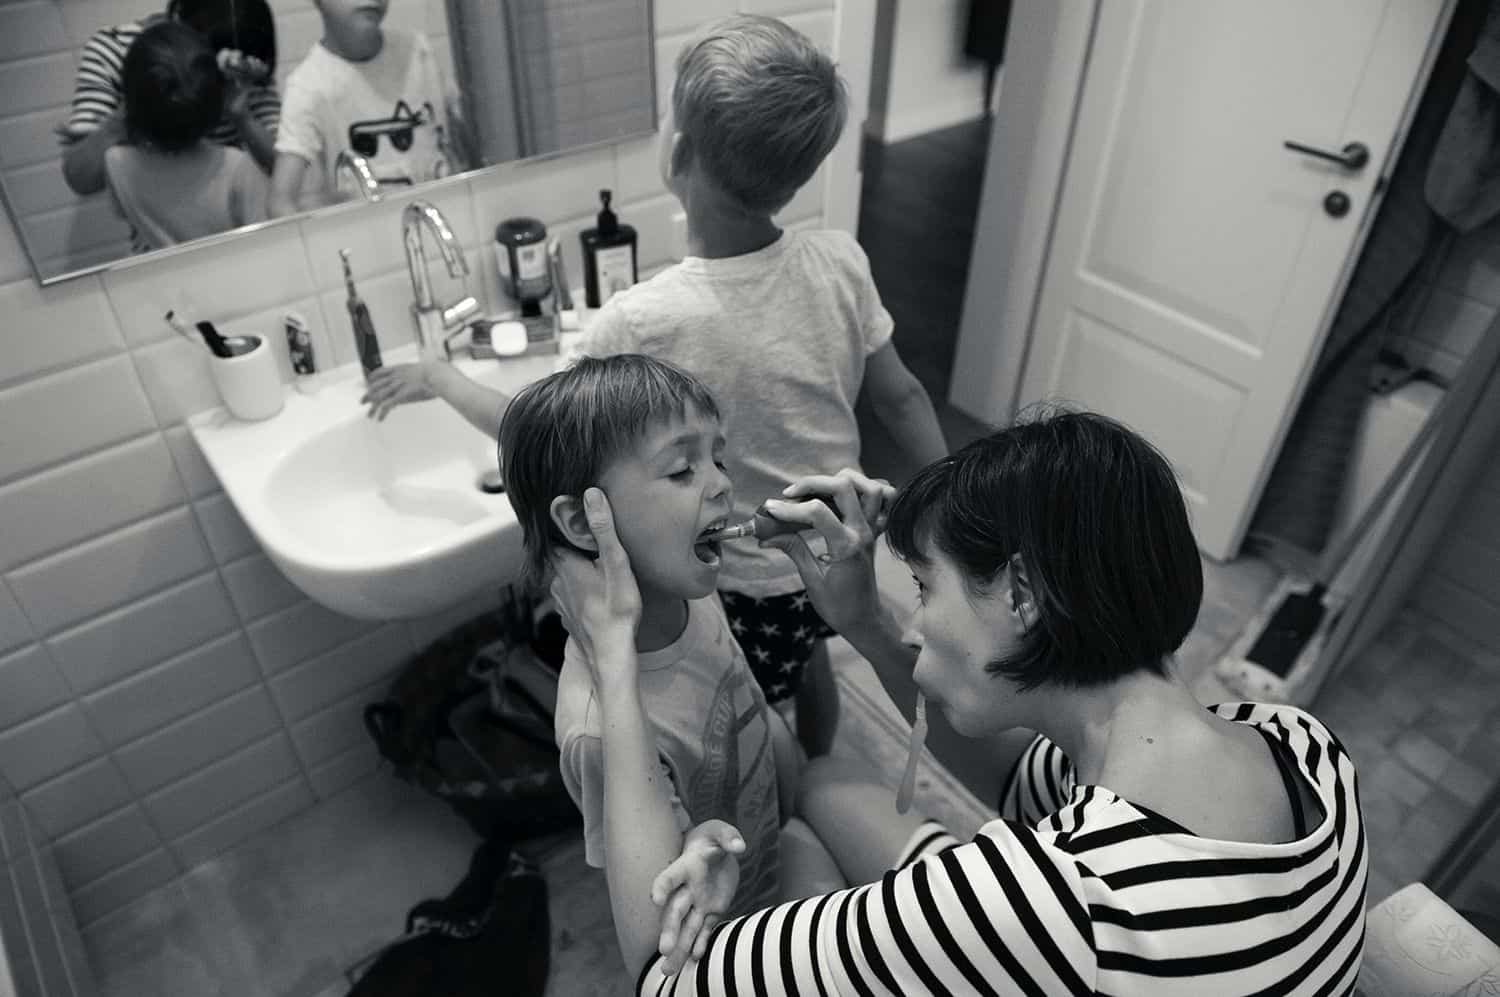 A mom brushes her younger child's teeth while her older child rinses their mouth at the sink